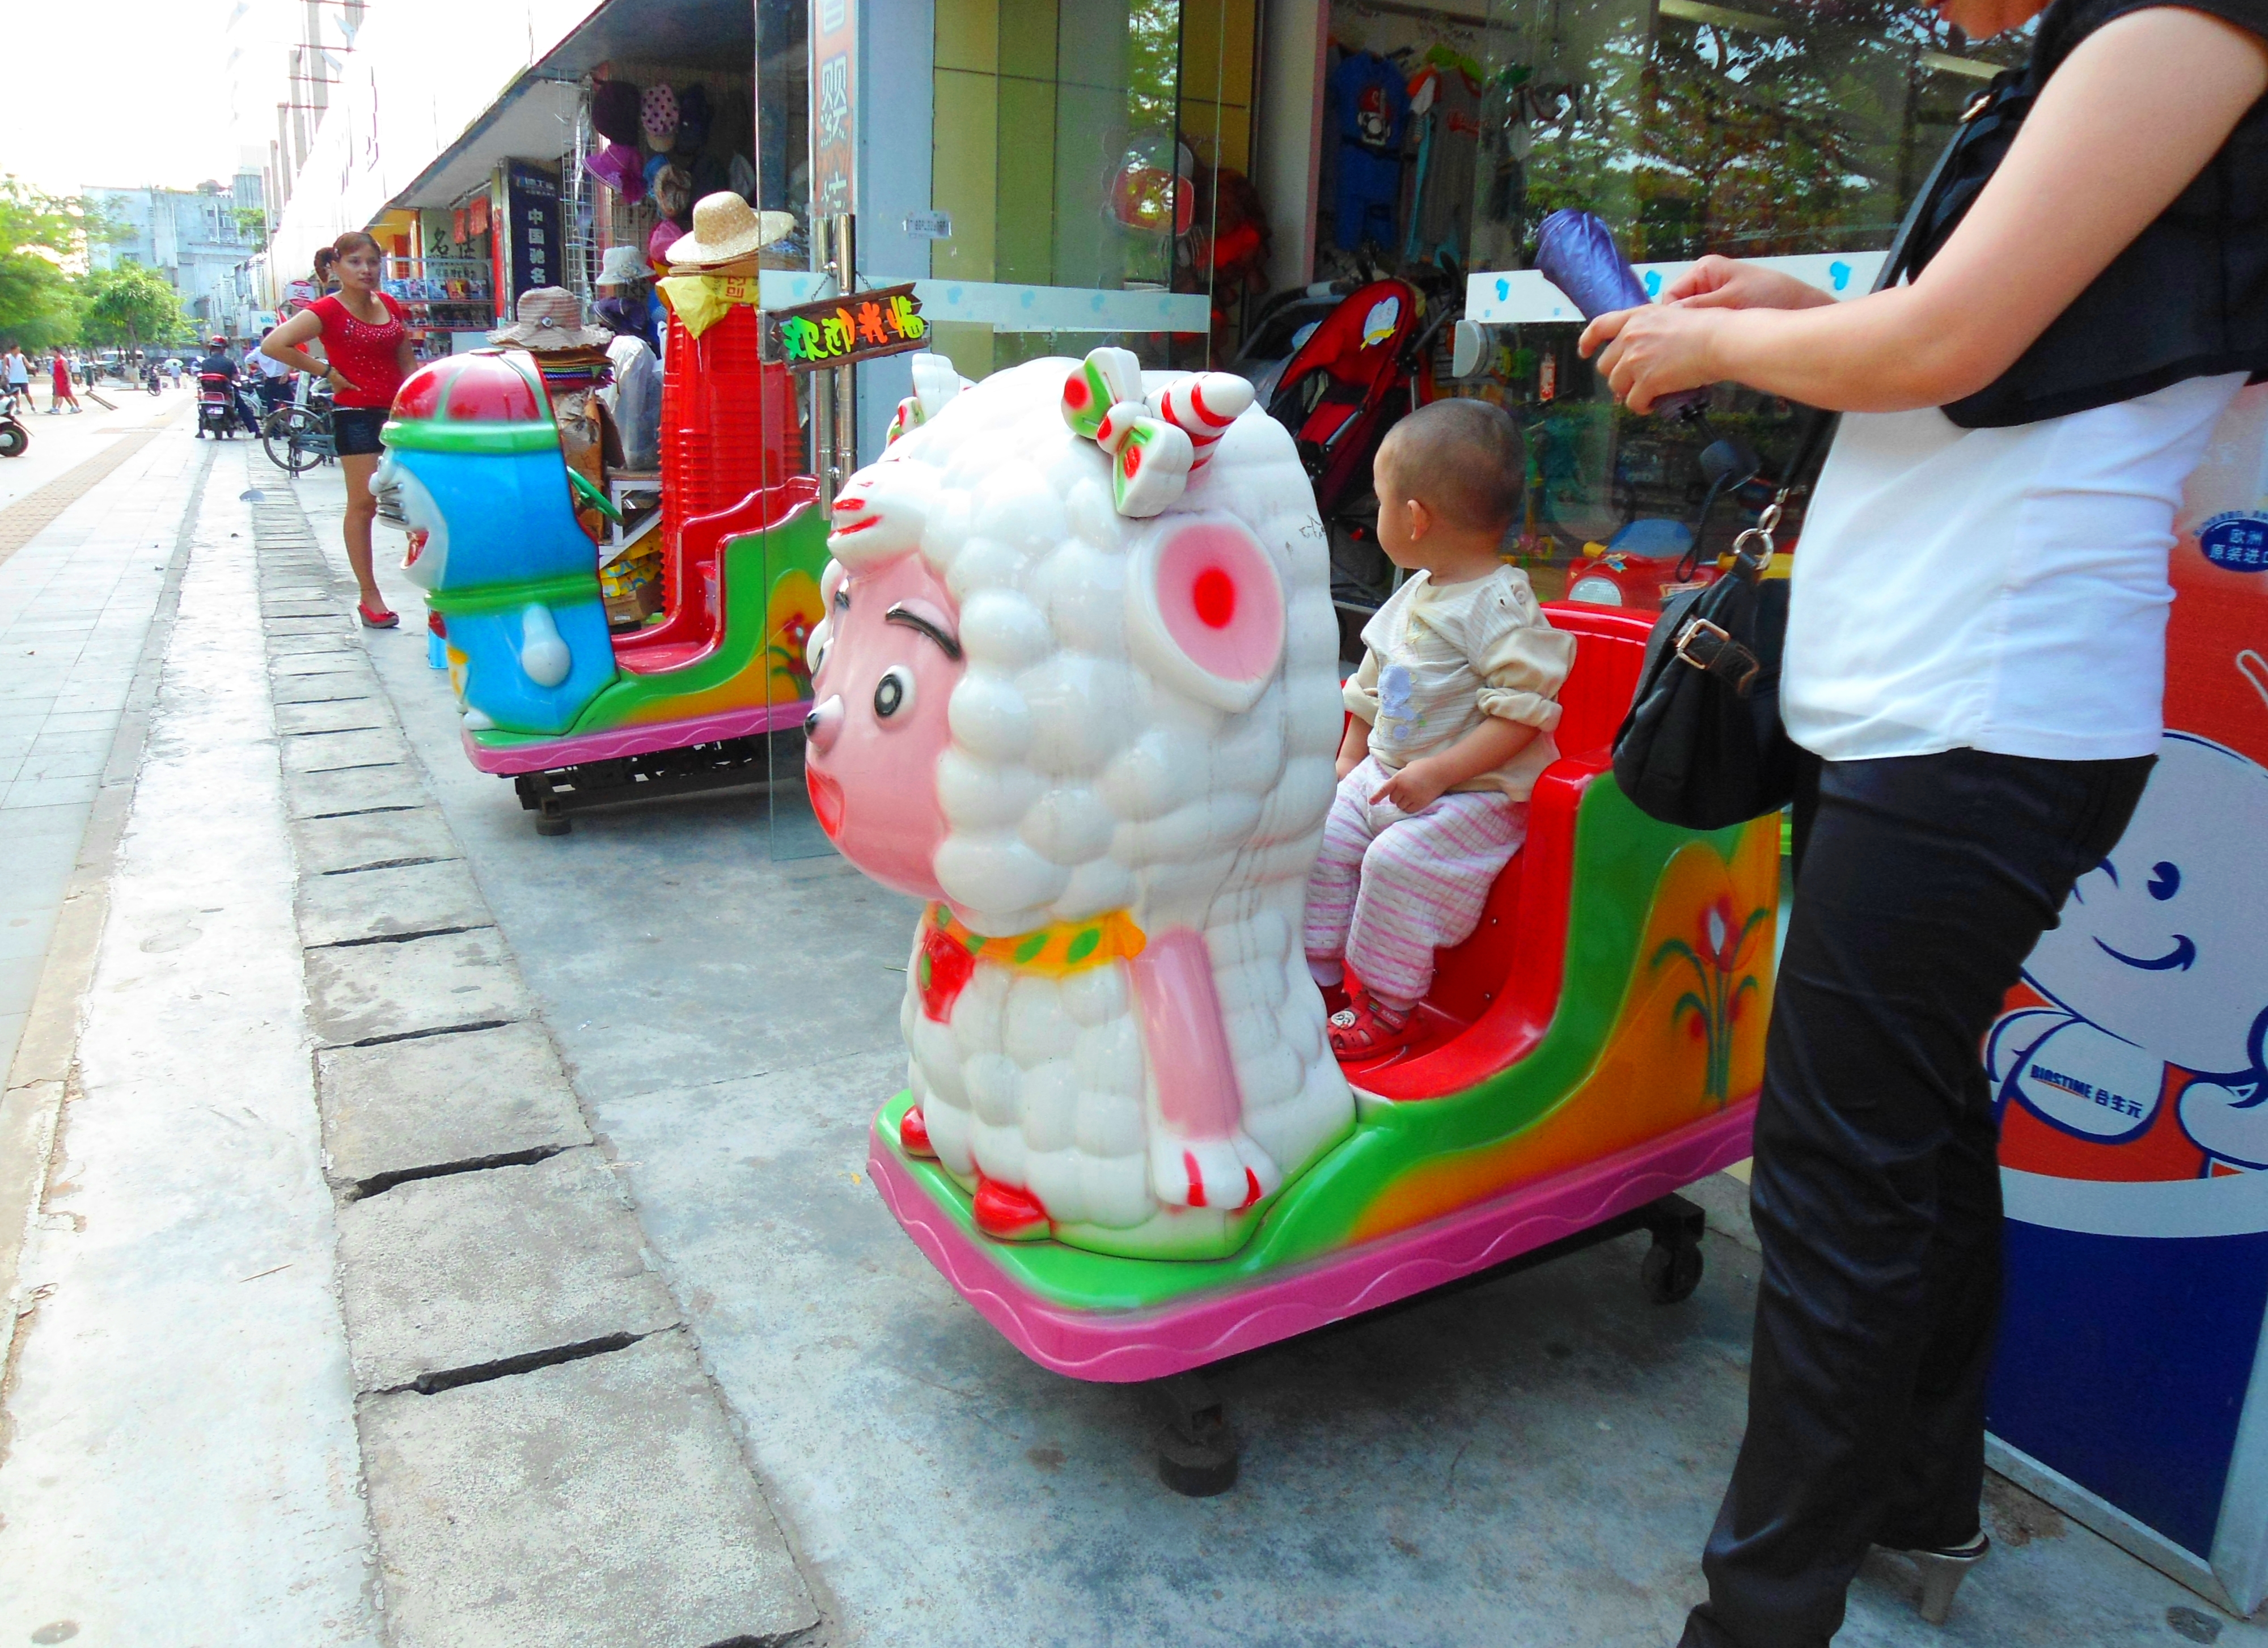 File:Kiddie ride - 05.jpg - Wikimedia Commons